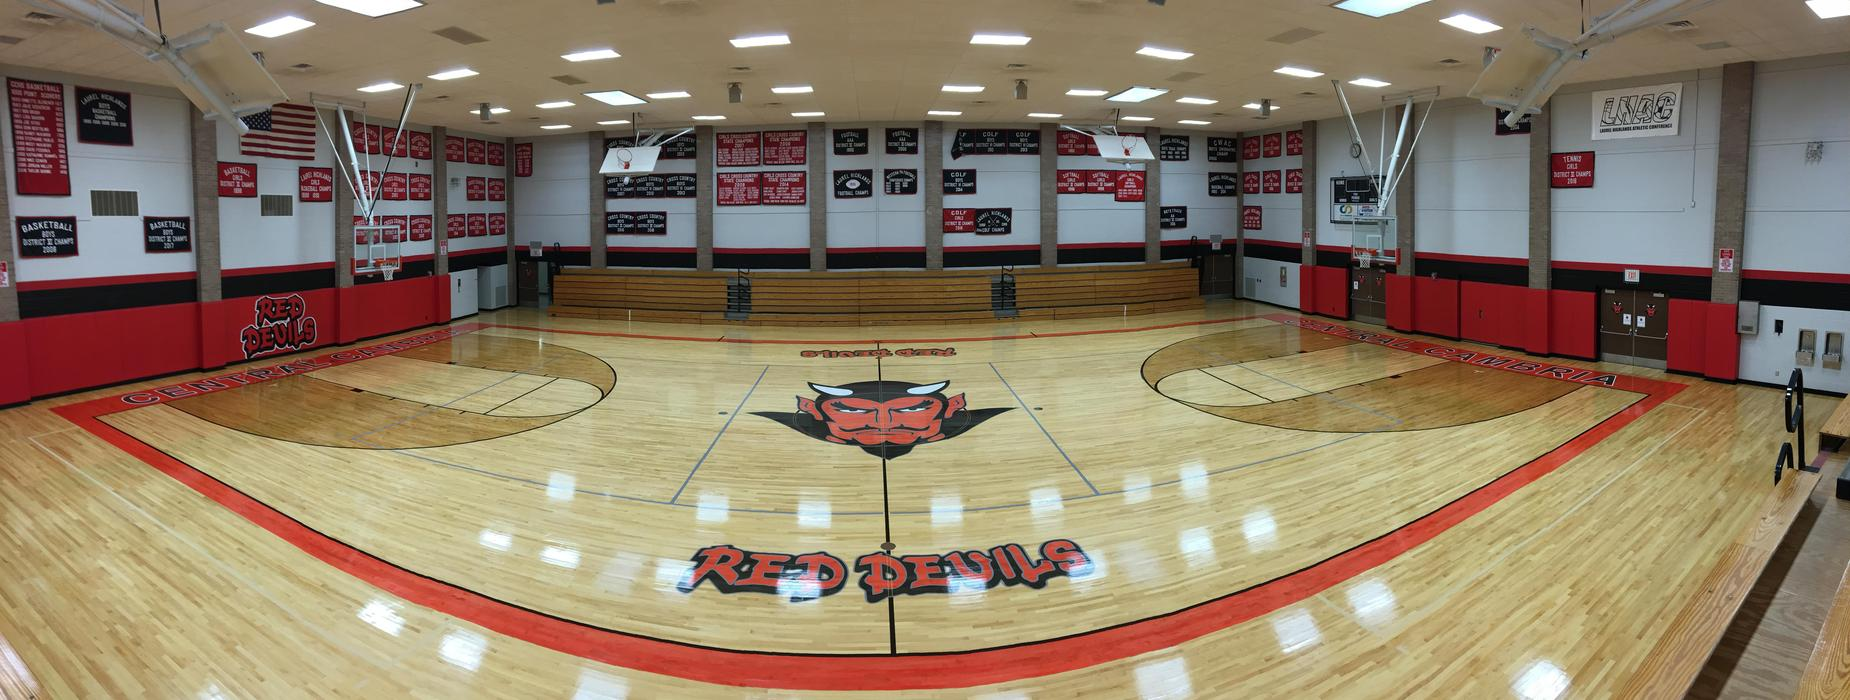 central cambria high school gymnasium